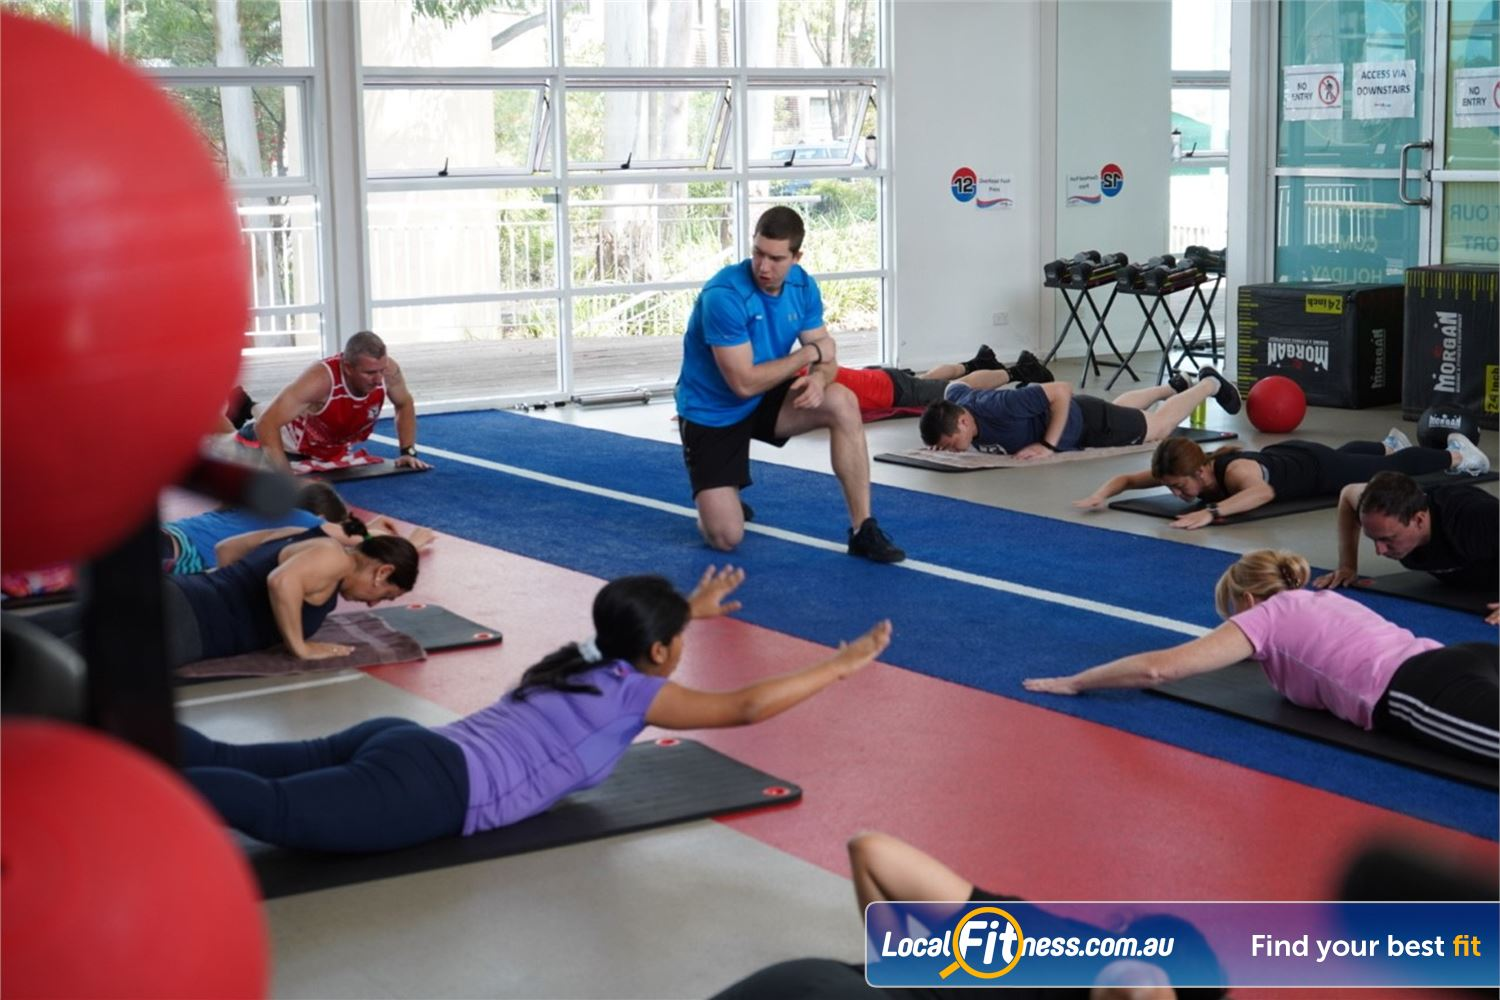 North Ryde Fitness & Aquatic North Ryde North Ryde Fitness + Aquatic is the most versatile gym you can imagine.